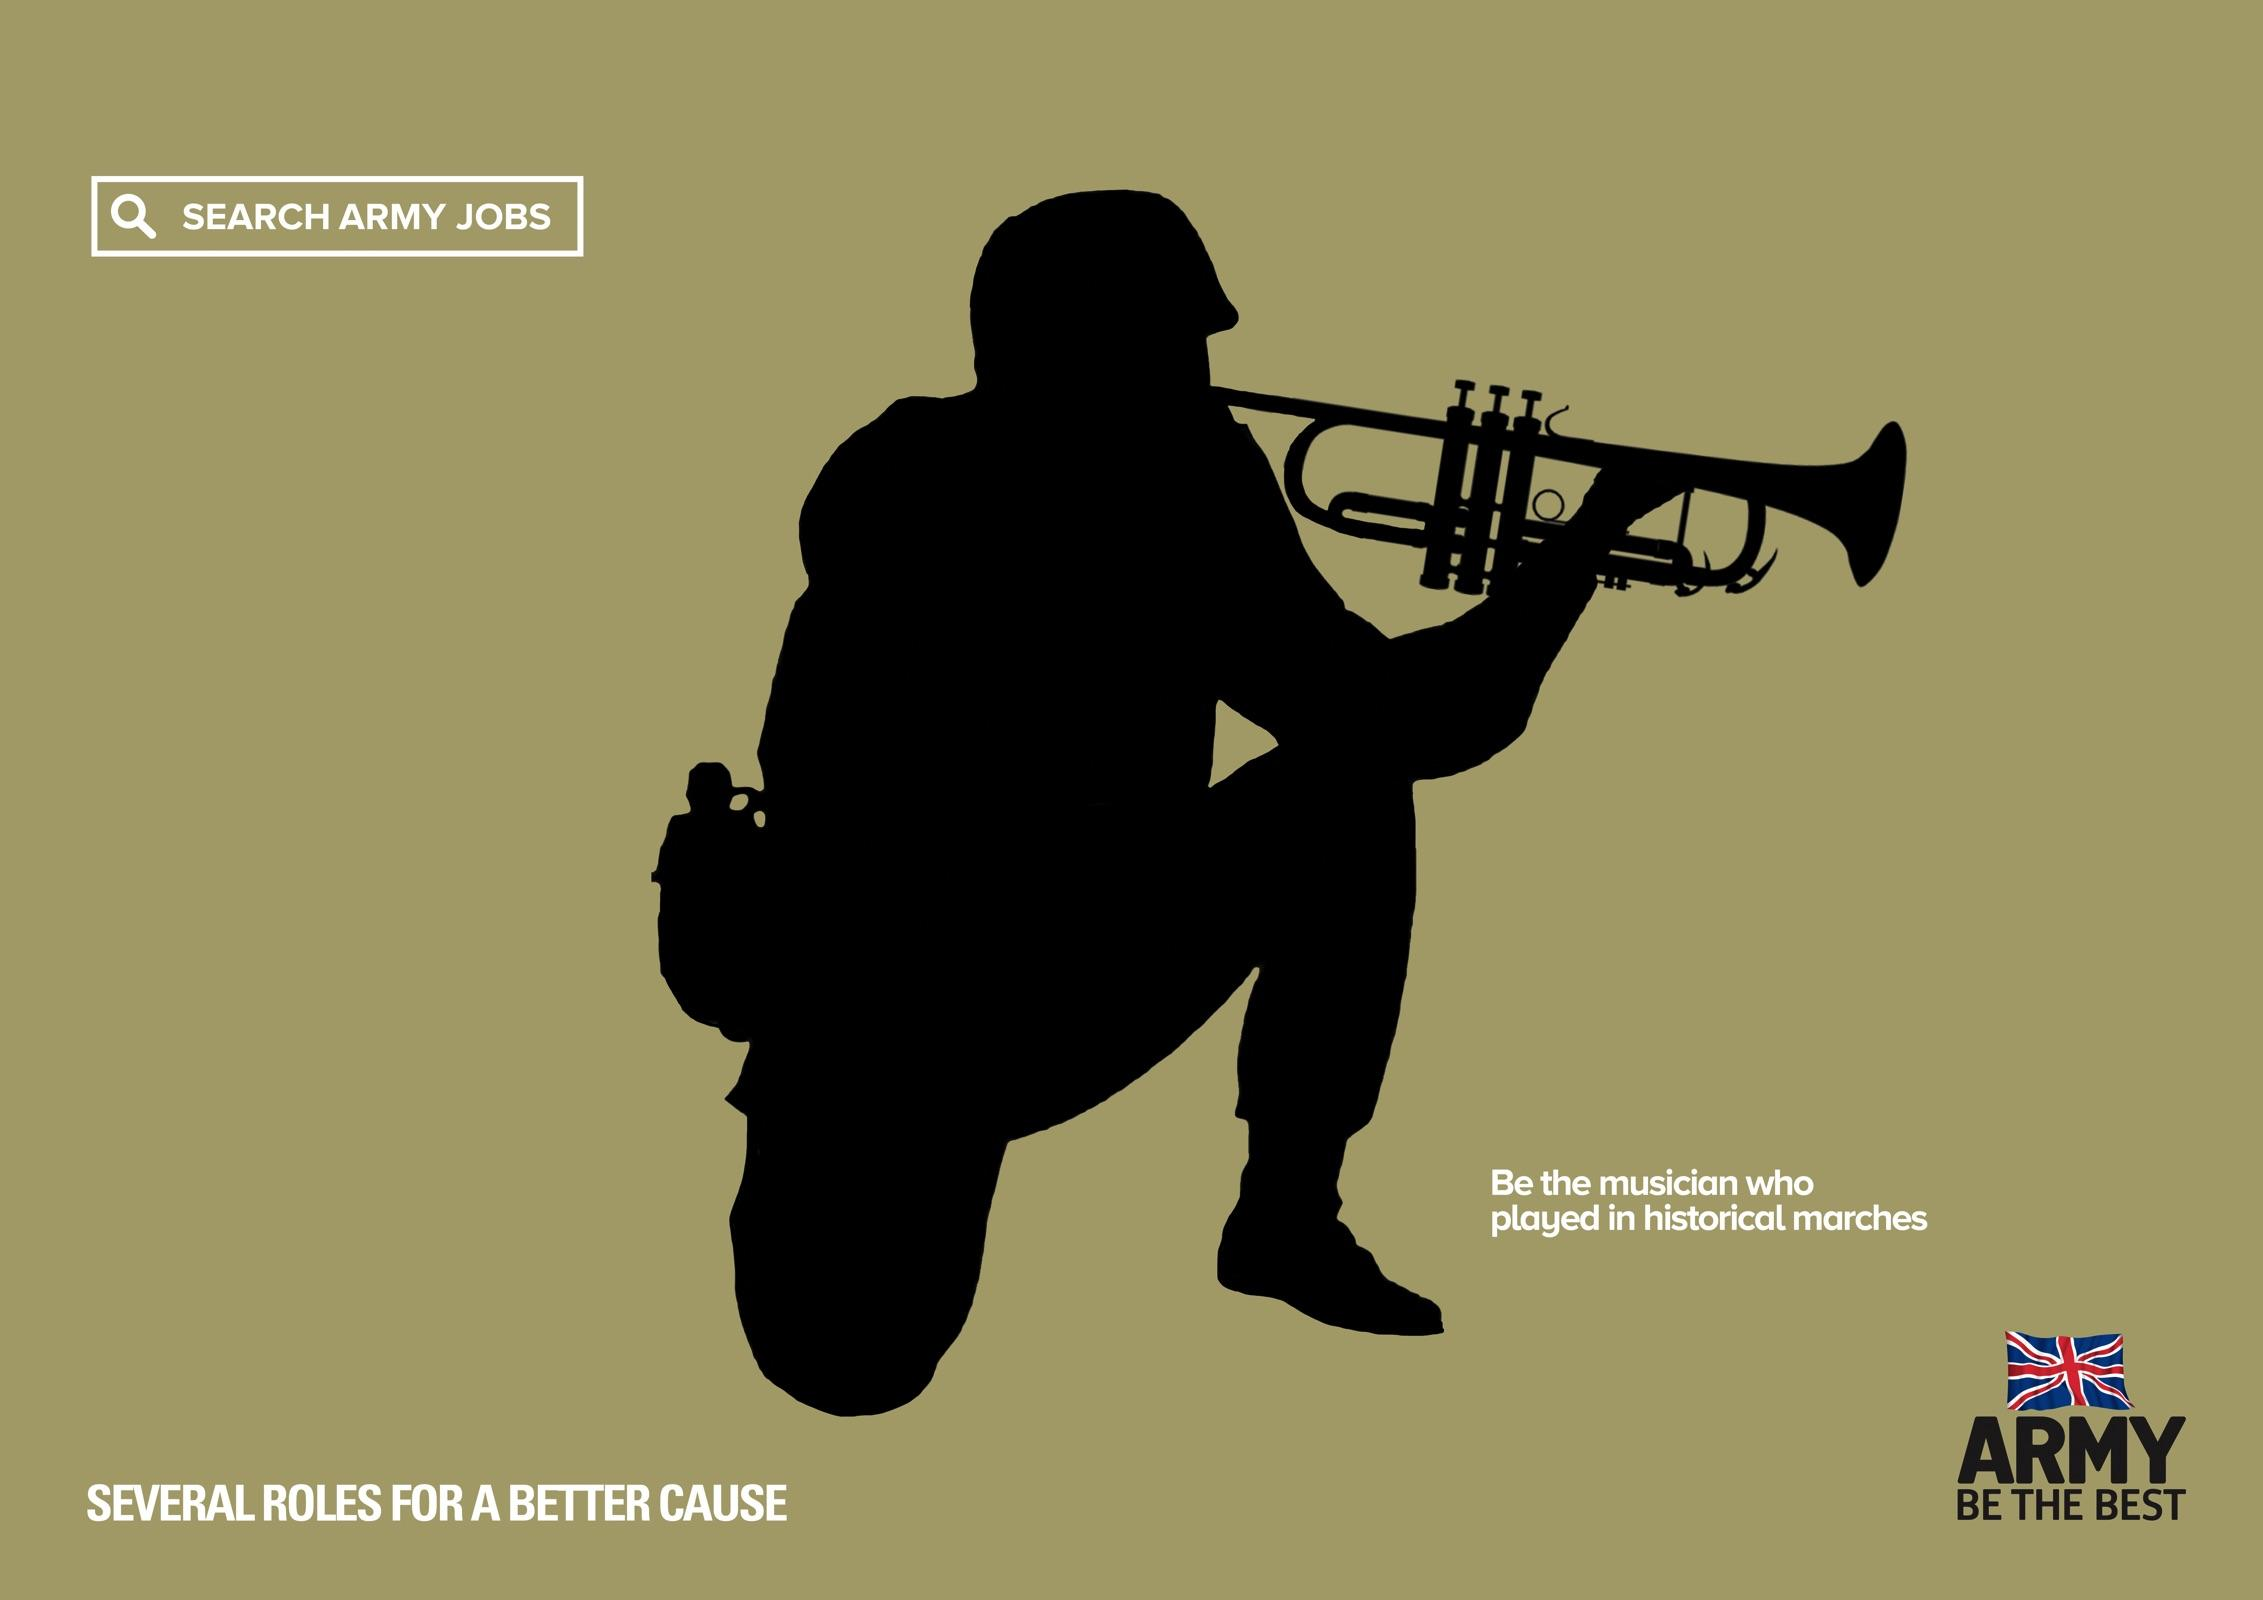 British Army: For A Better Cause, Musician